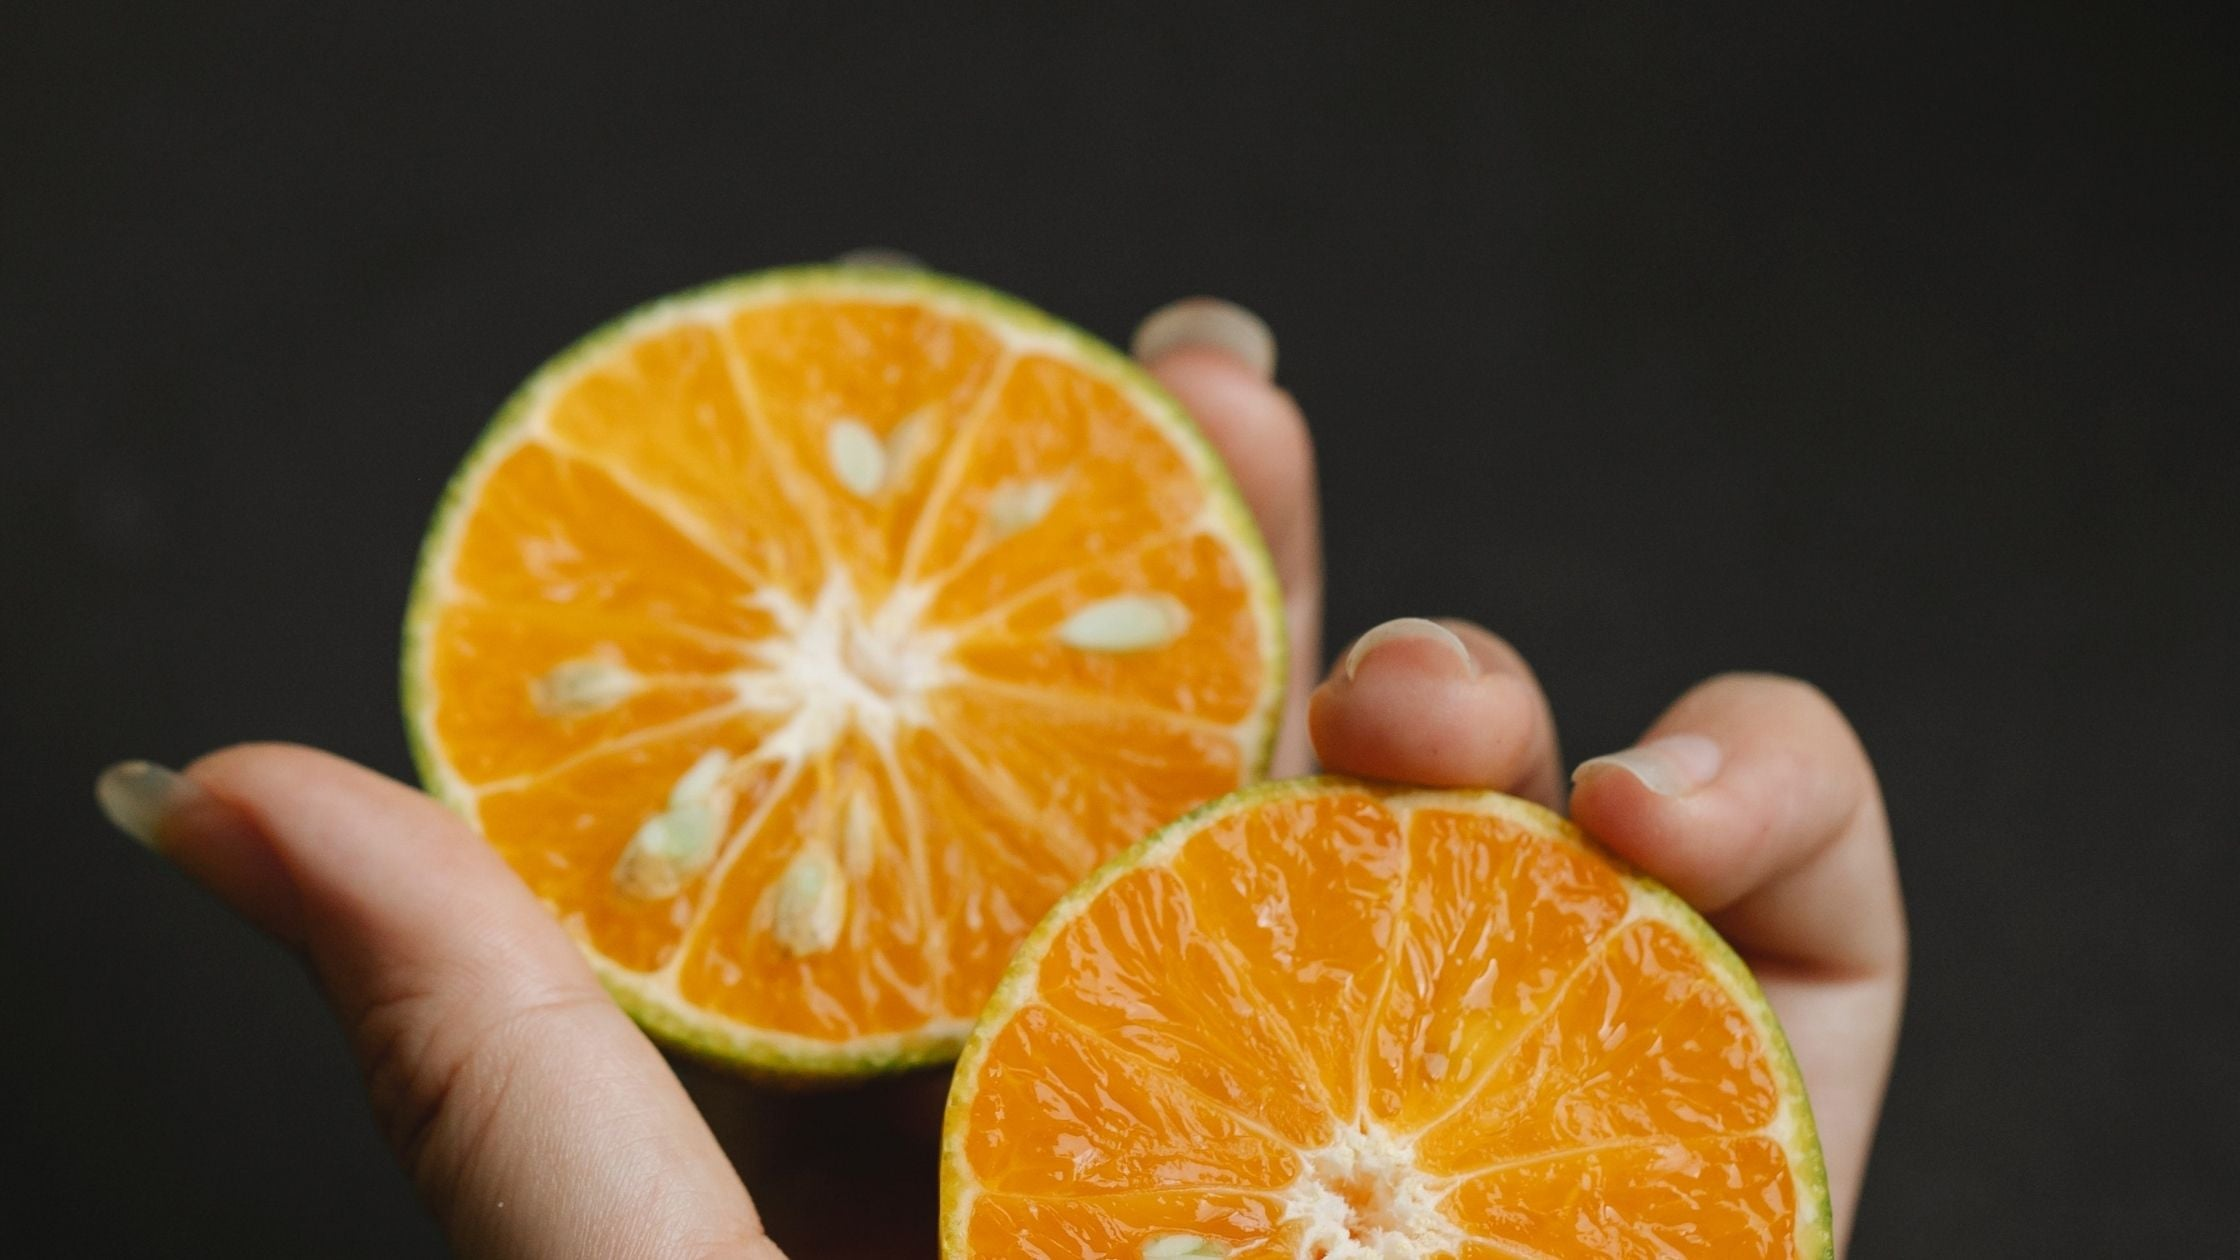 Is Vitamin C serum suitable for oily skin?